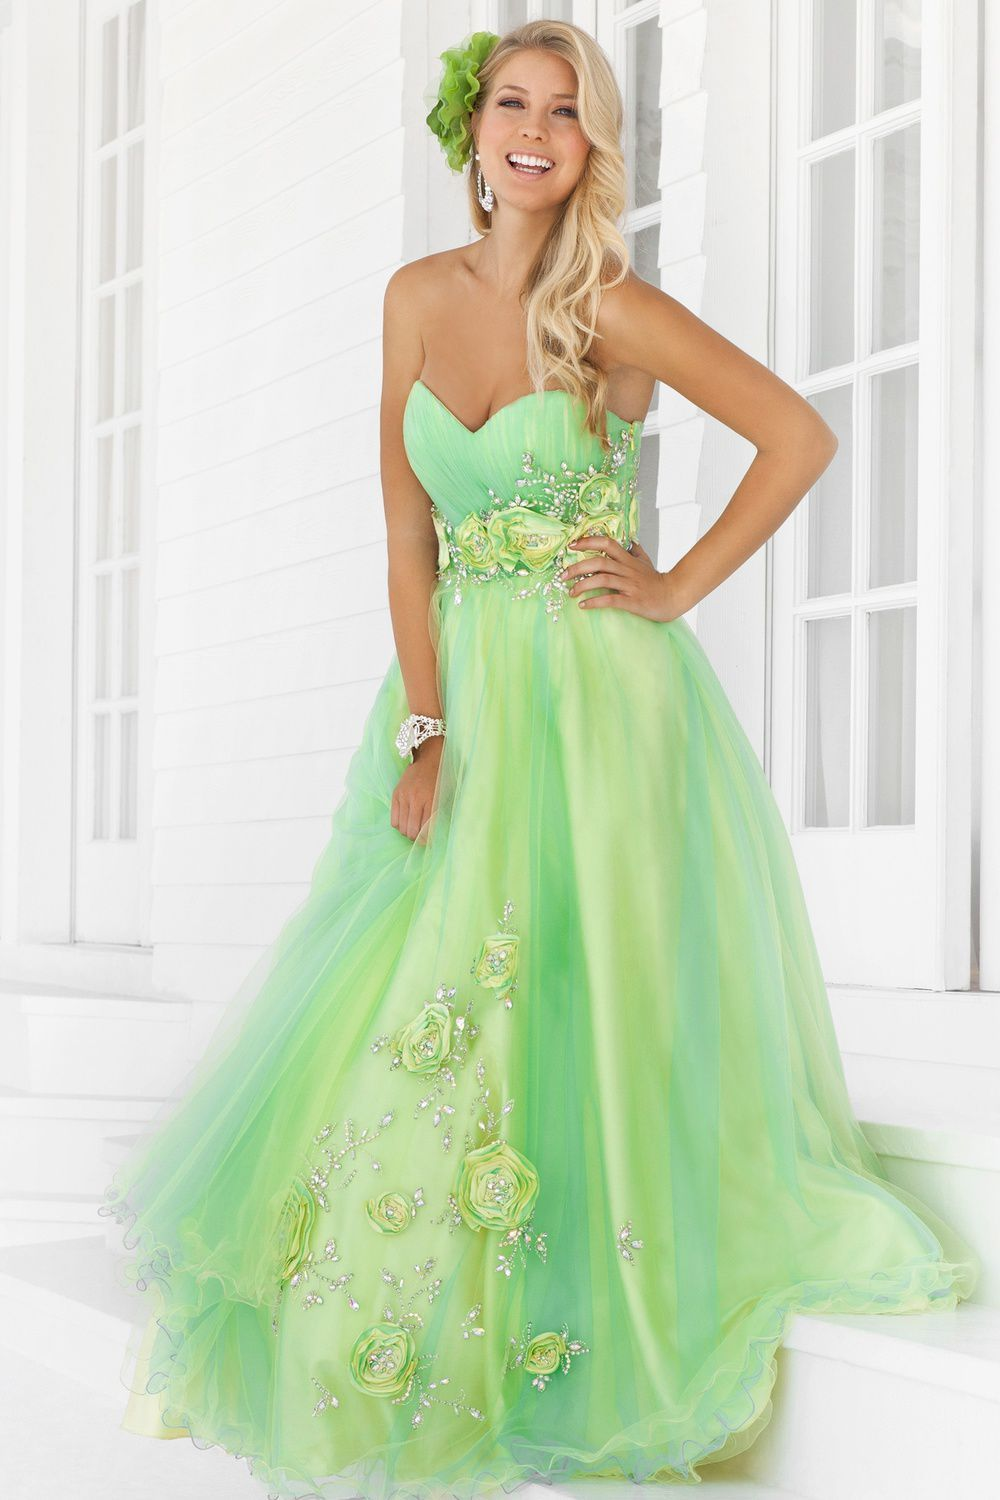 stores in canada for prom dresses